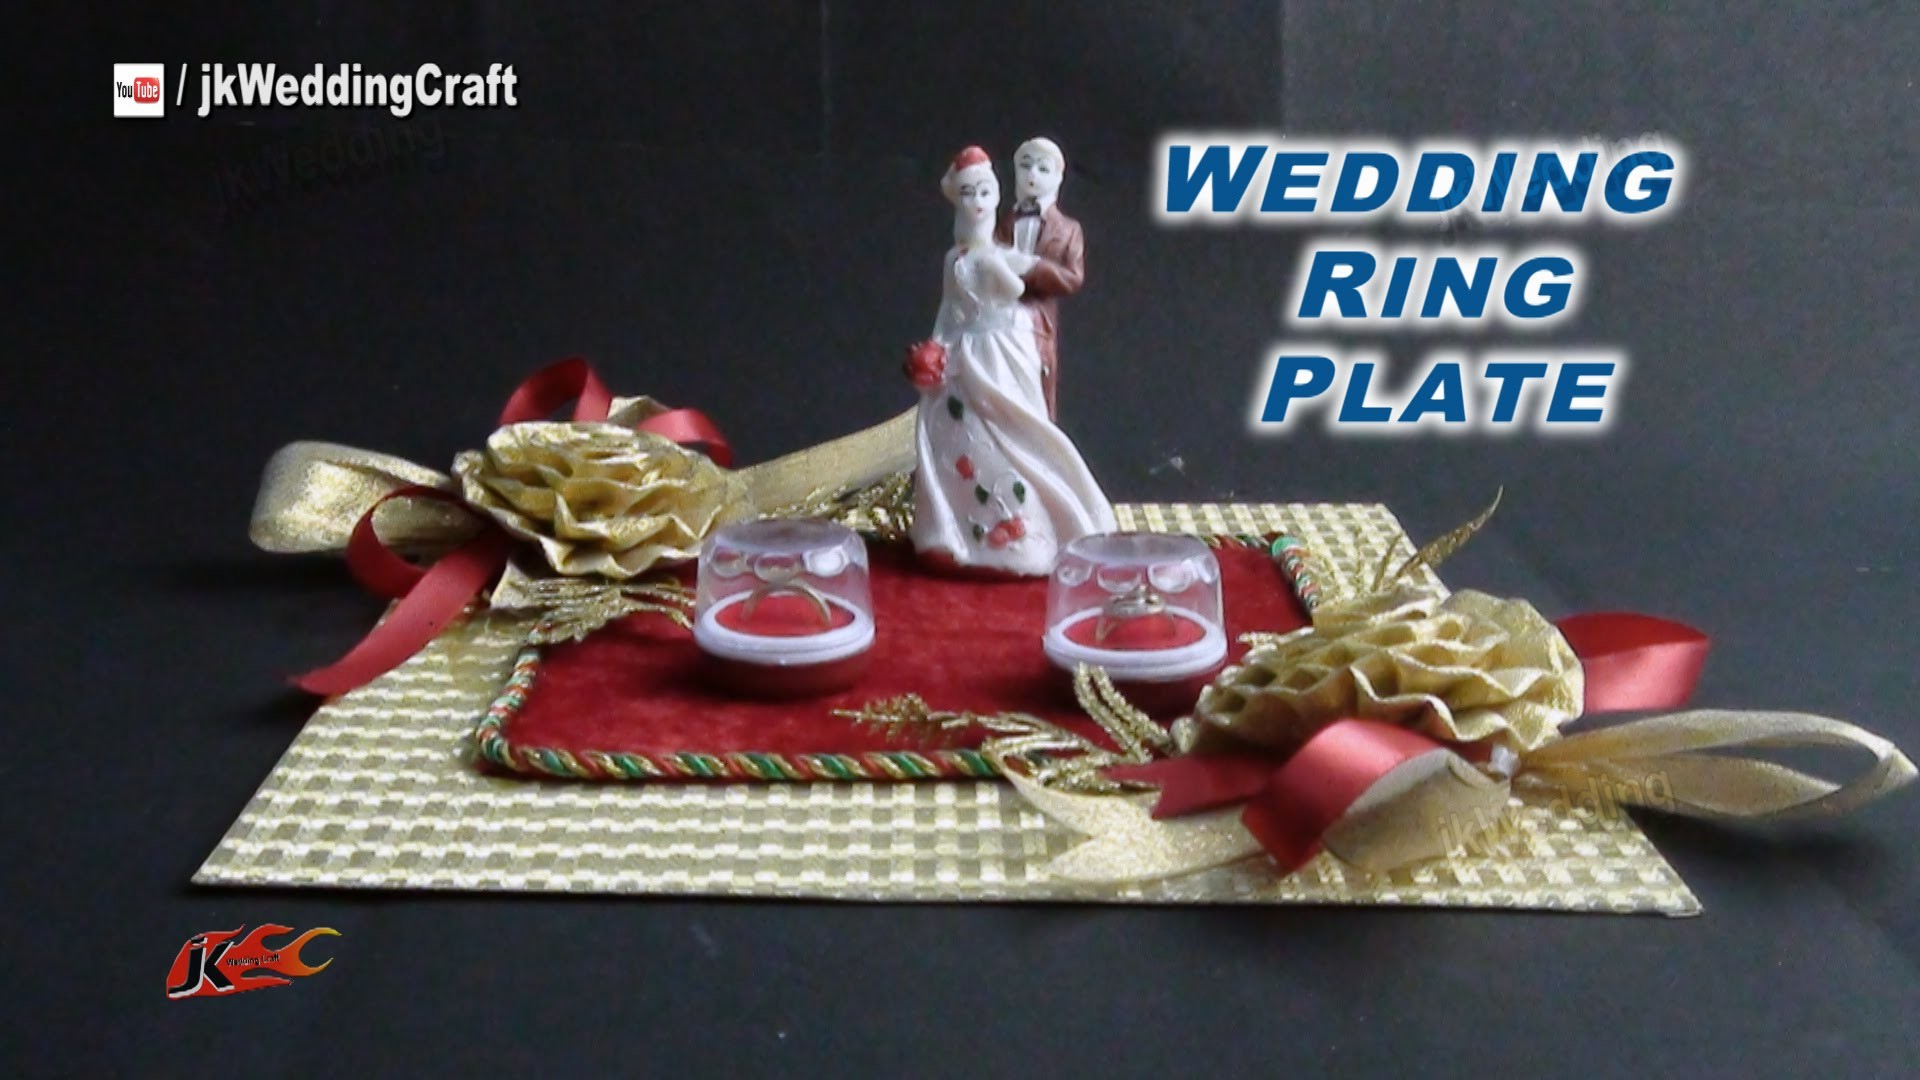 DIY Engagement. Wedding Ring Platter | How to make | JK Wedding Craft  036